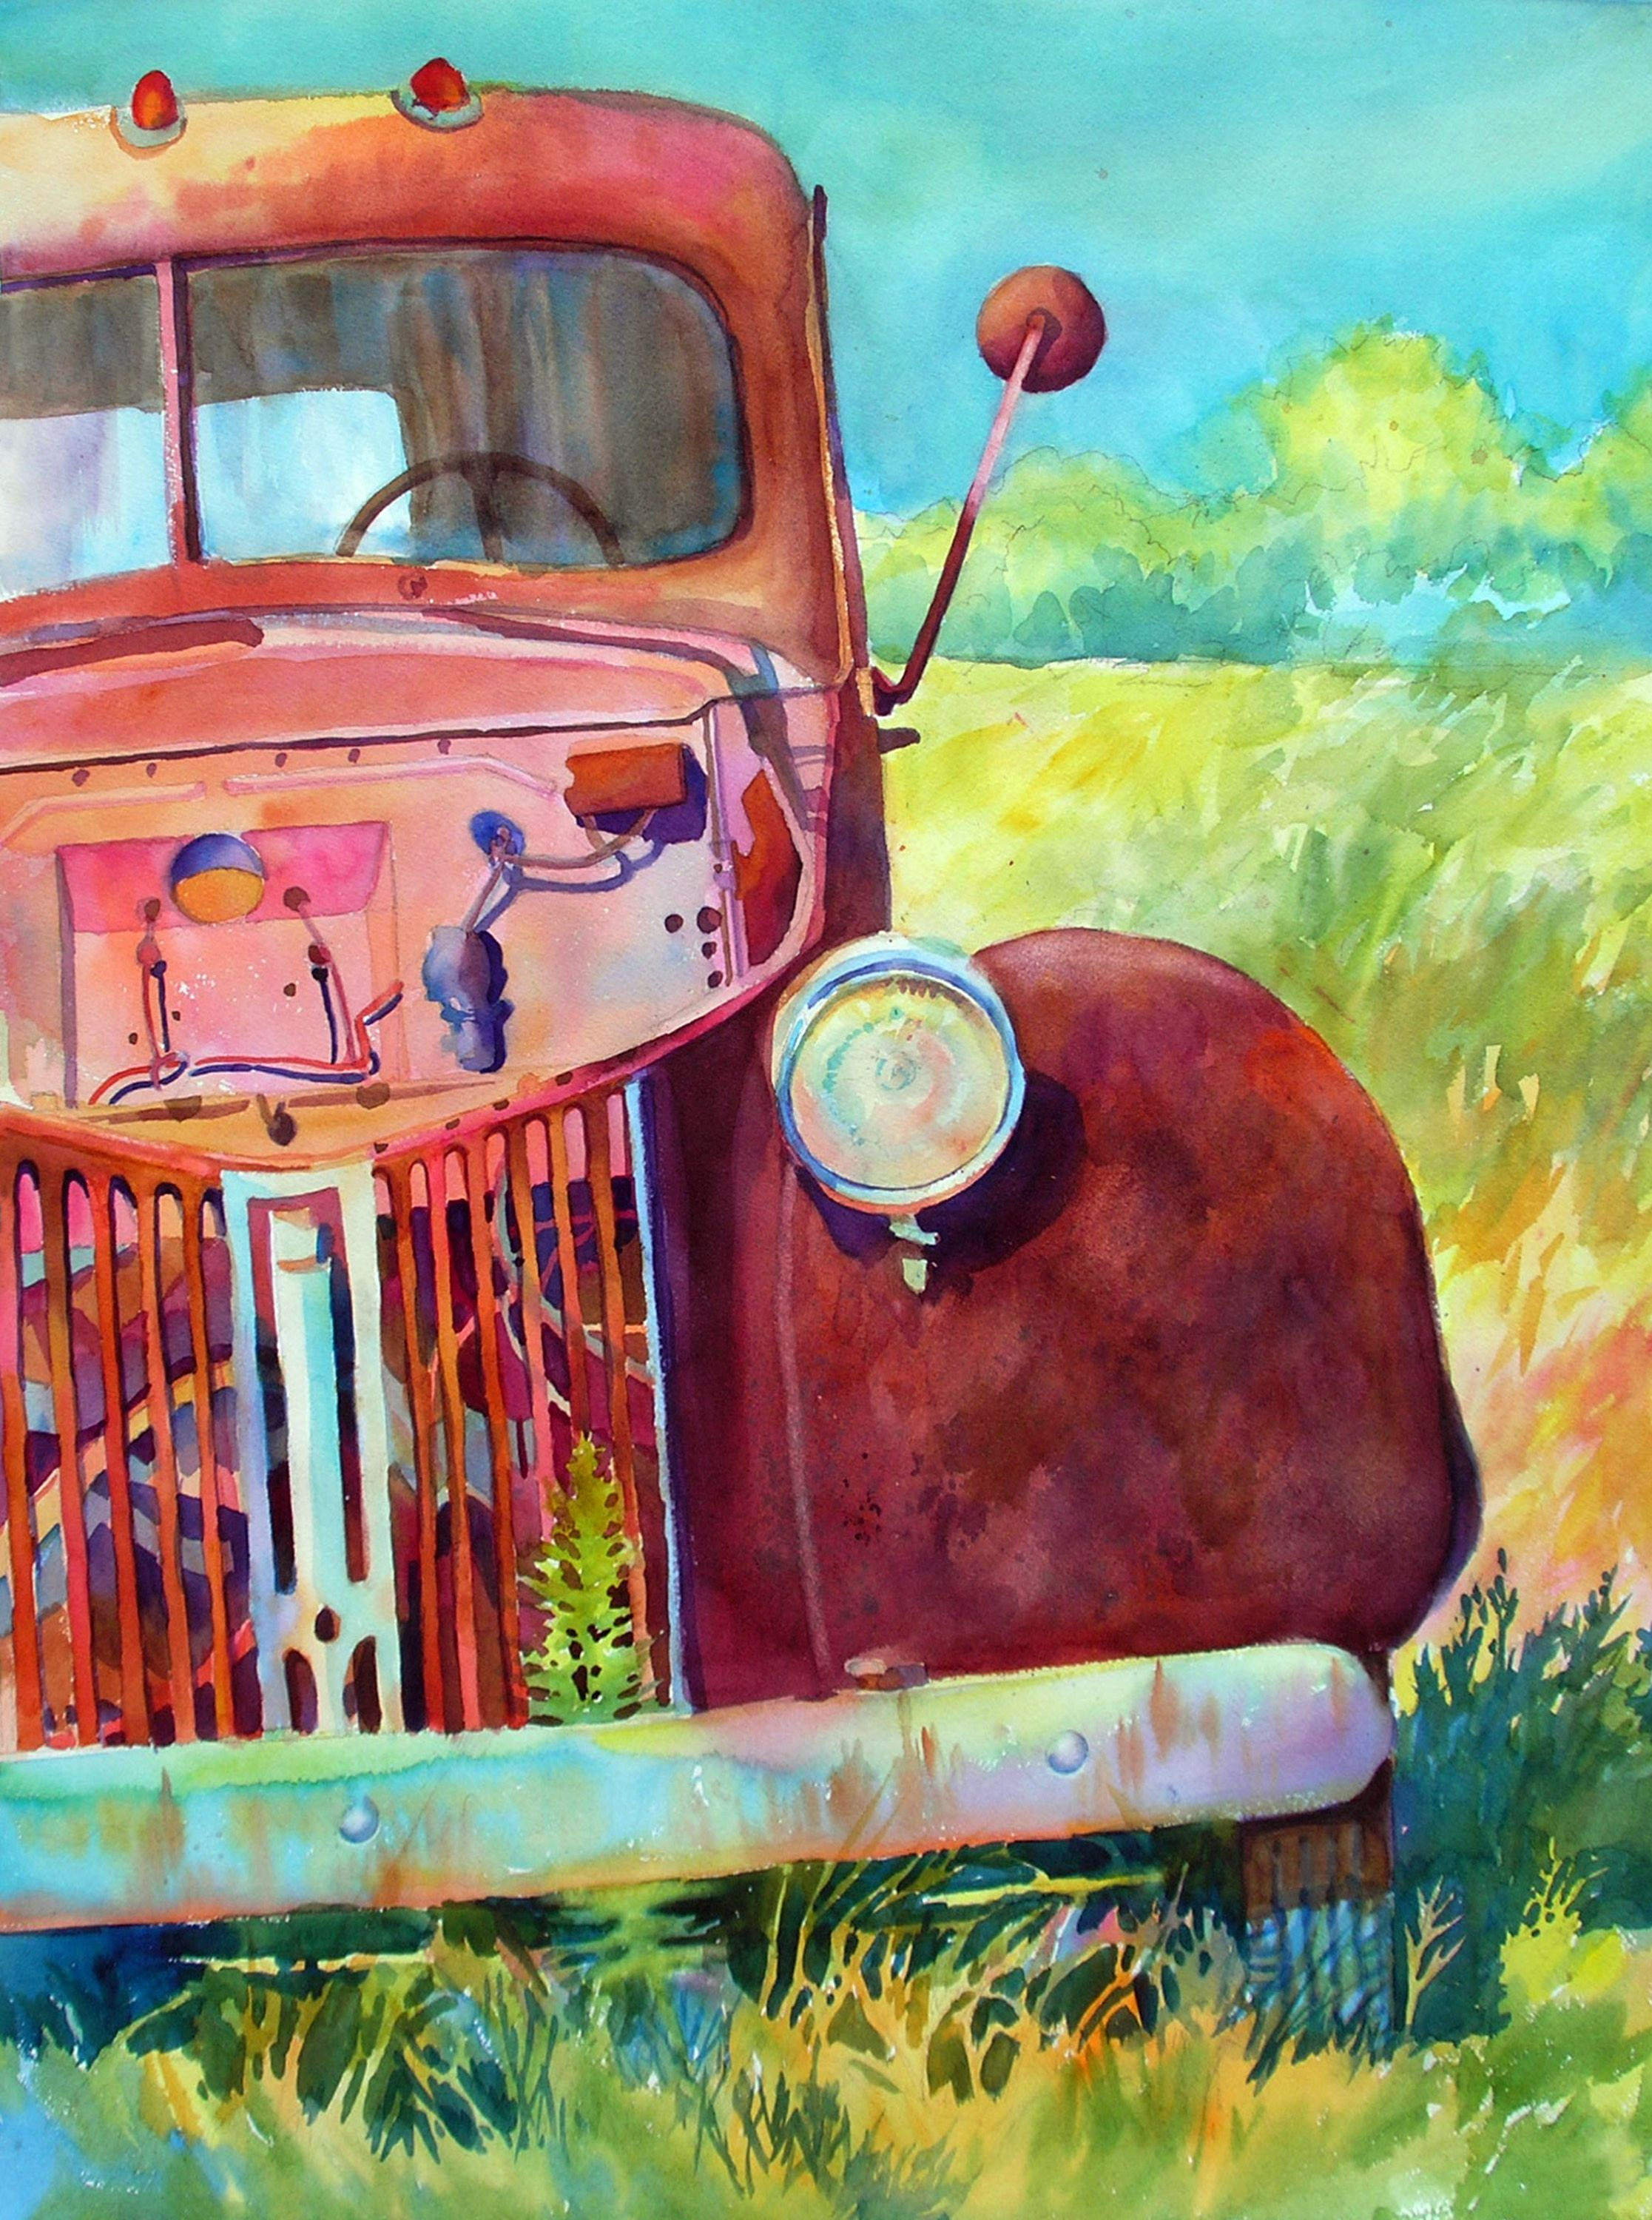 x watercolor painting of an old abandoned truck with its